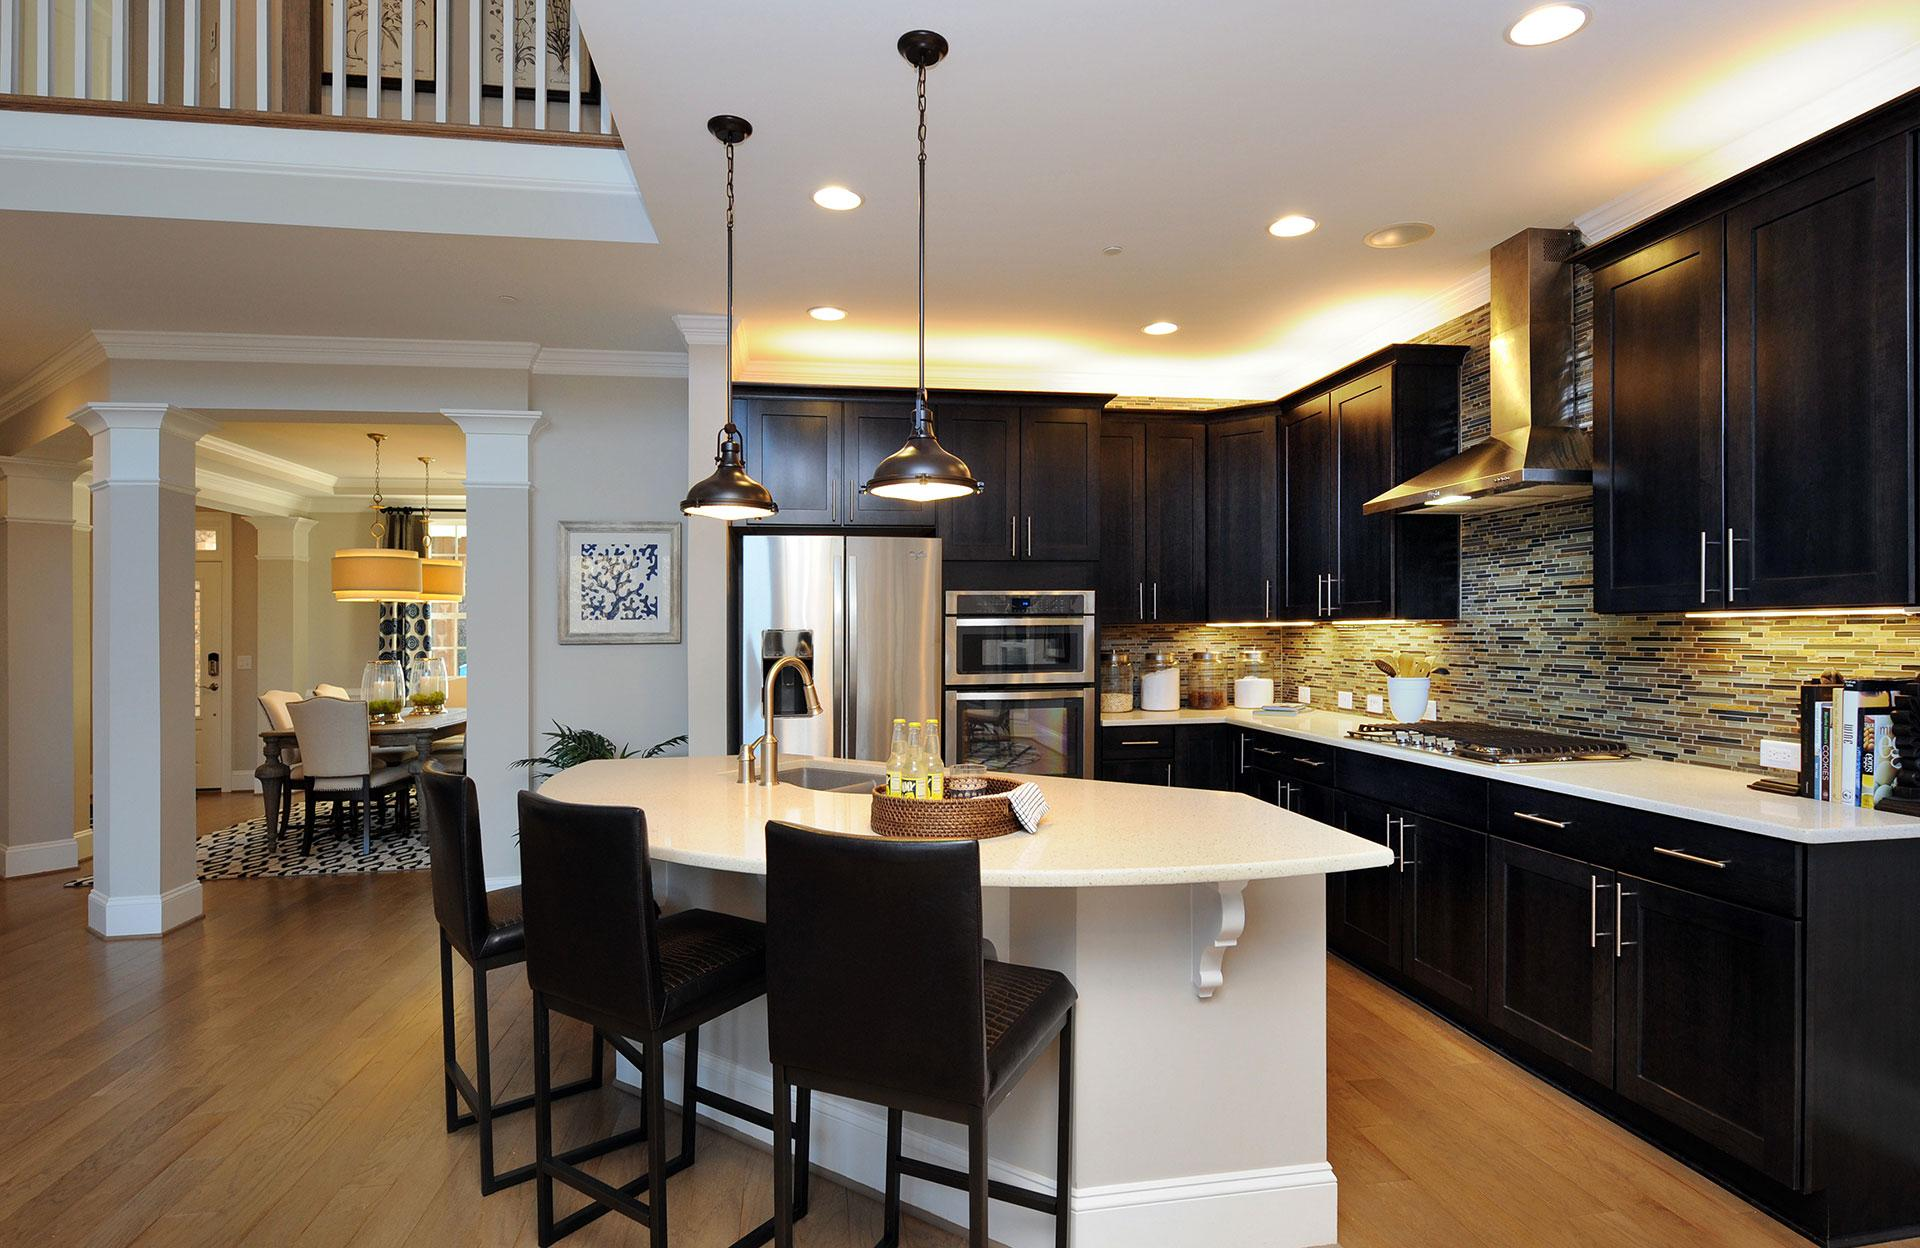 Drees homes design center raleigh home photo style Kitchen design center raleigh nc